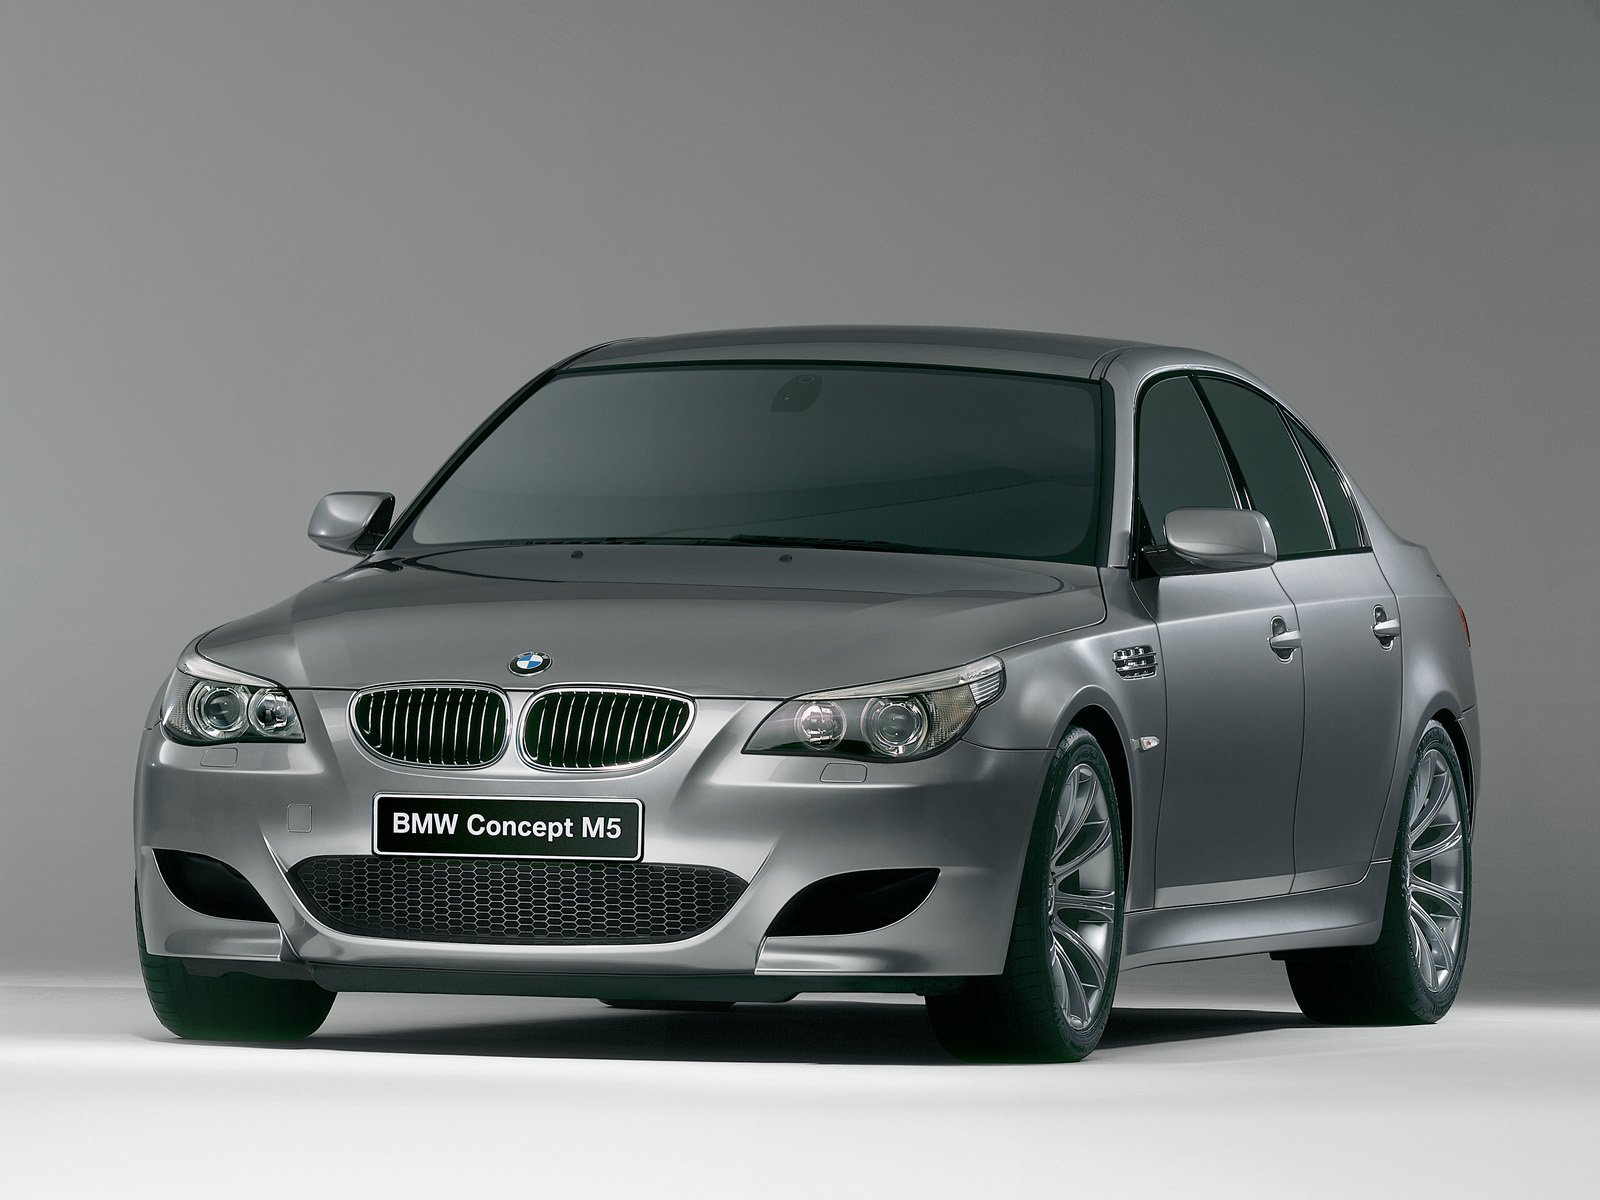 2005 BMW M5 E60 Review - Top Speed